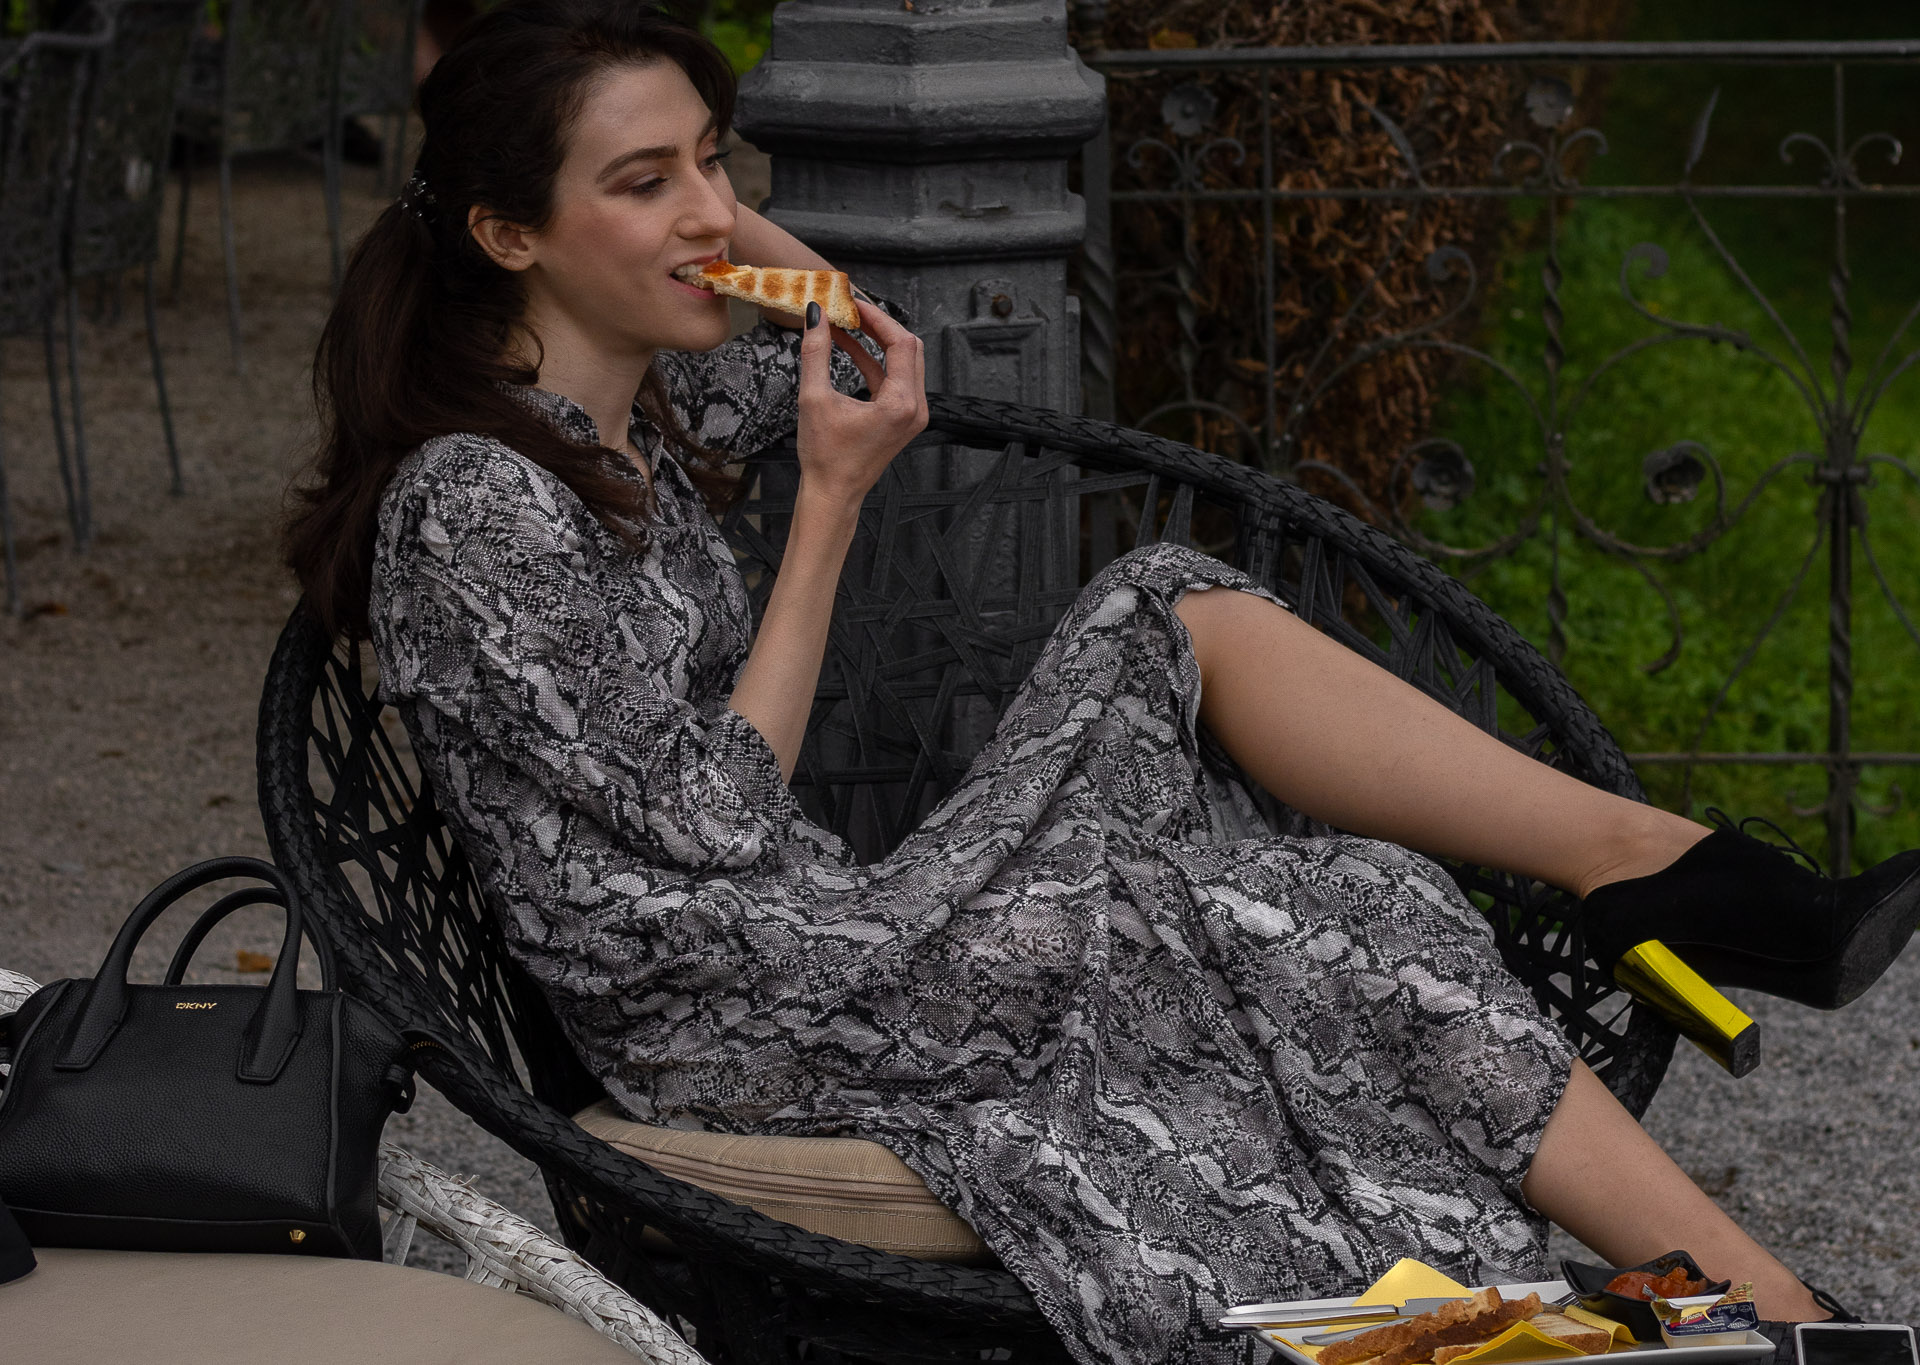 Fashion blogger Veronika Lipar of Brunette from Wall Street wearing grey long snakeskin print dress black Fendi ankle boots with golden heels eating peanut & jelly toast at brunch with BFFs in fall